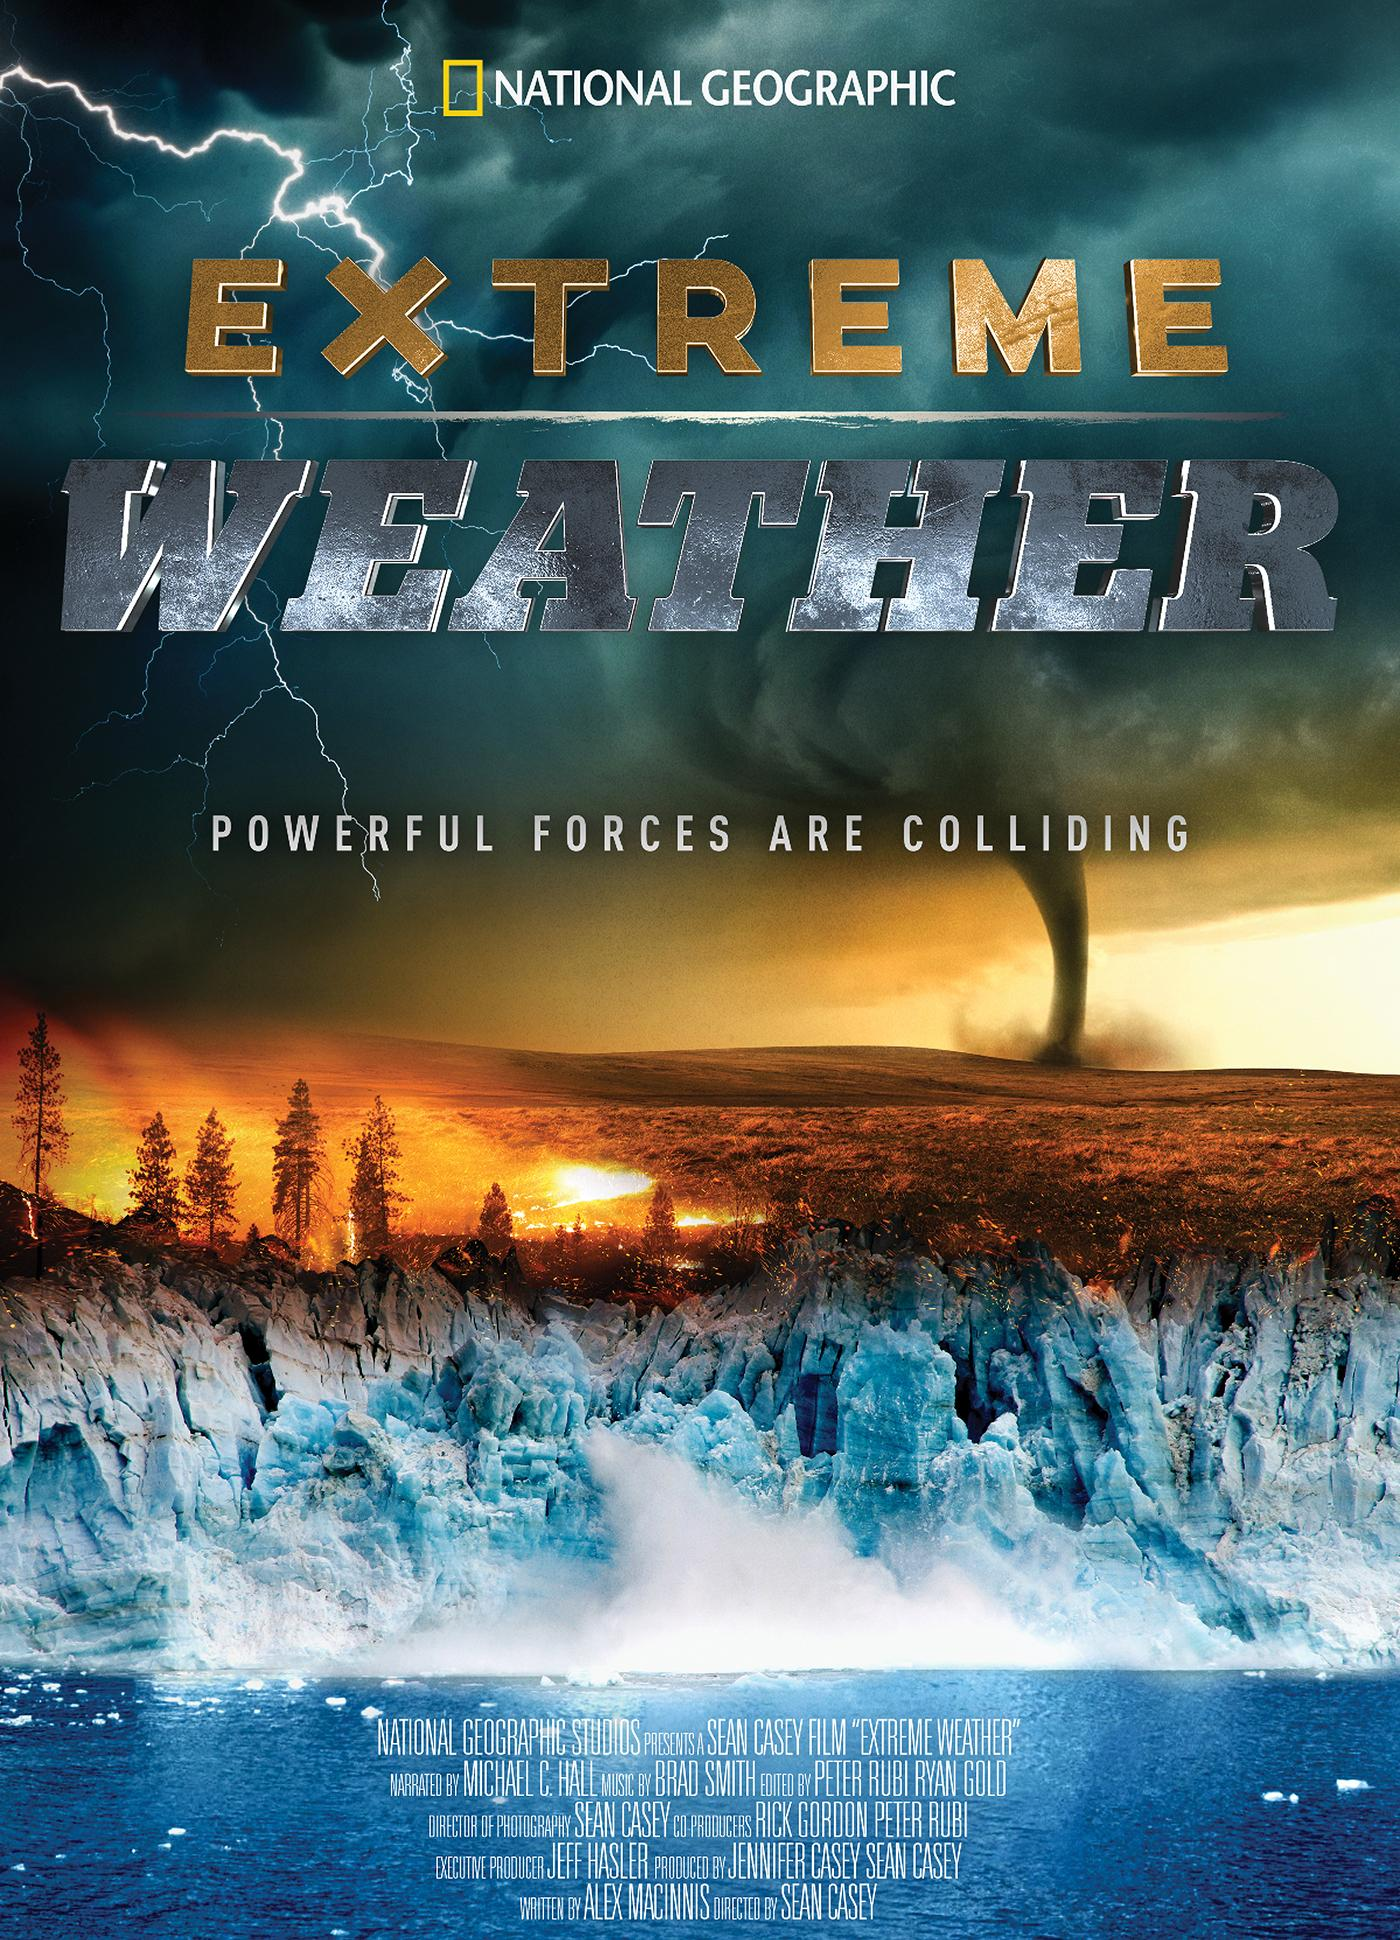 TJC 'Extreme Weather' dome show